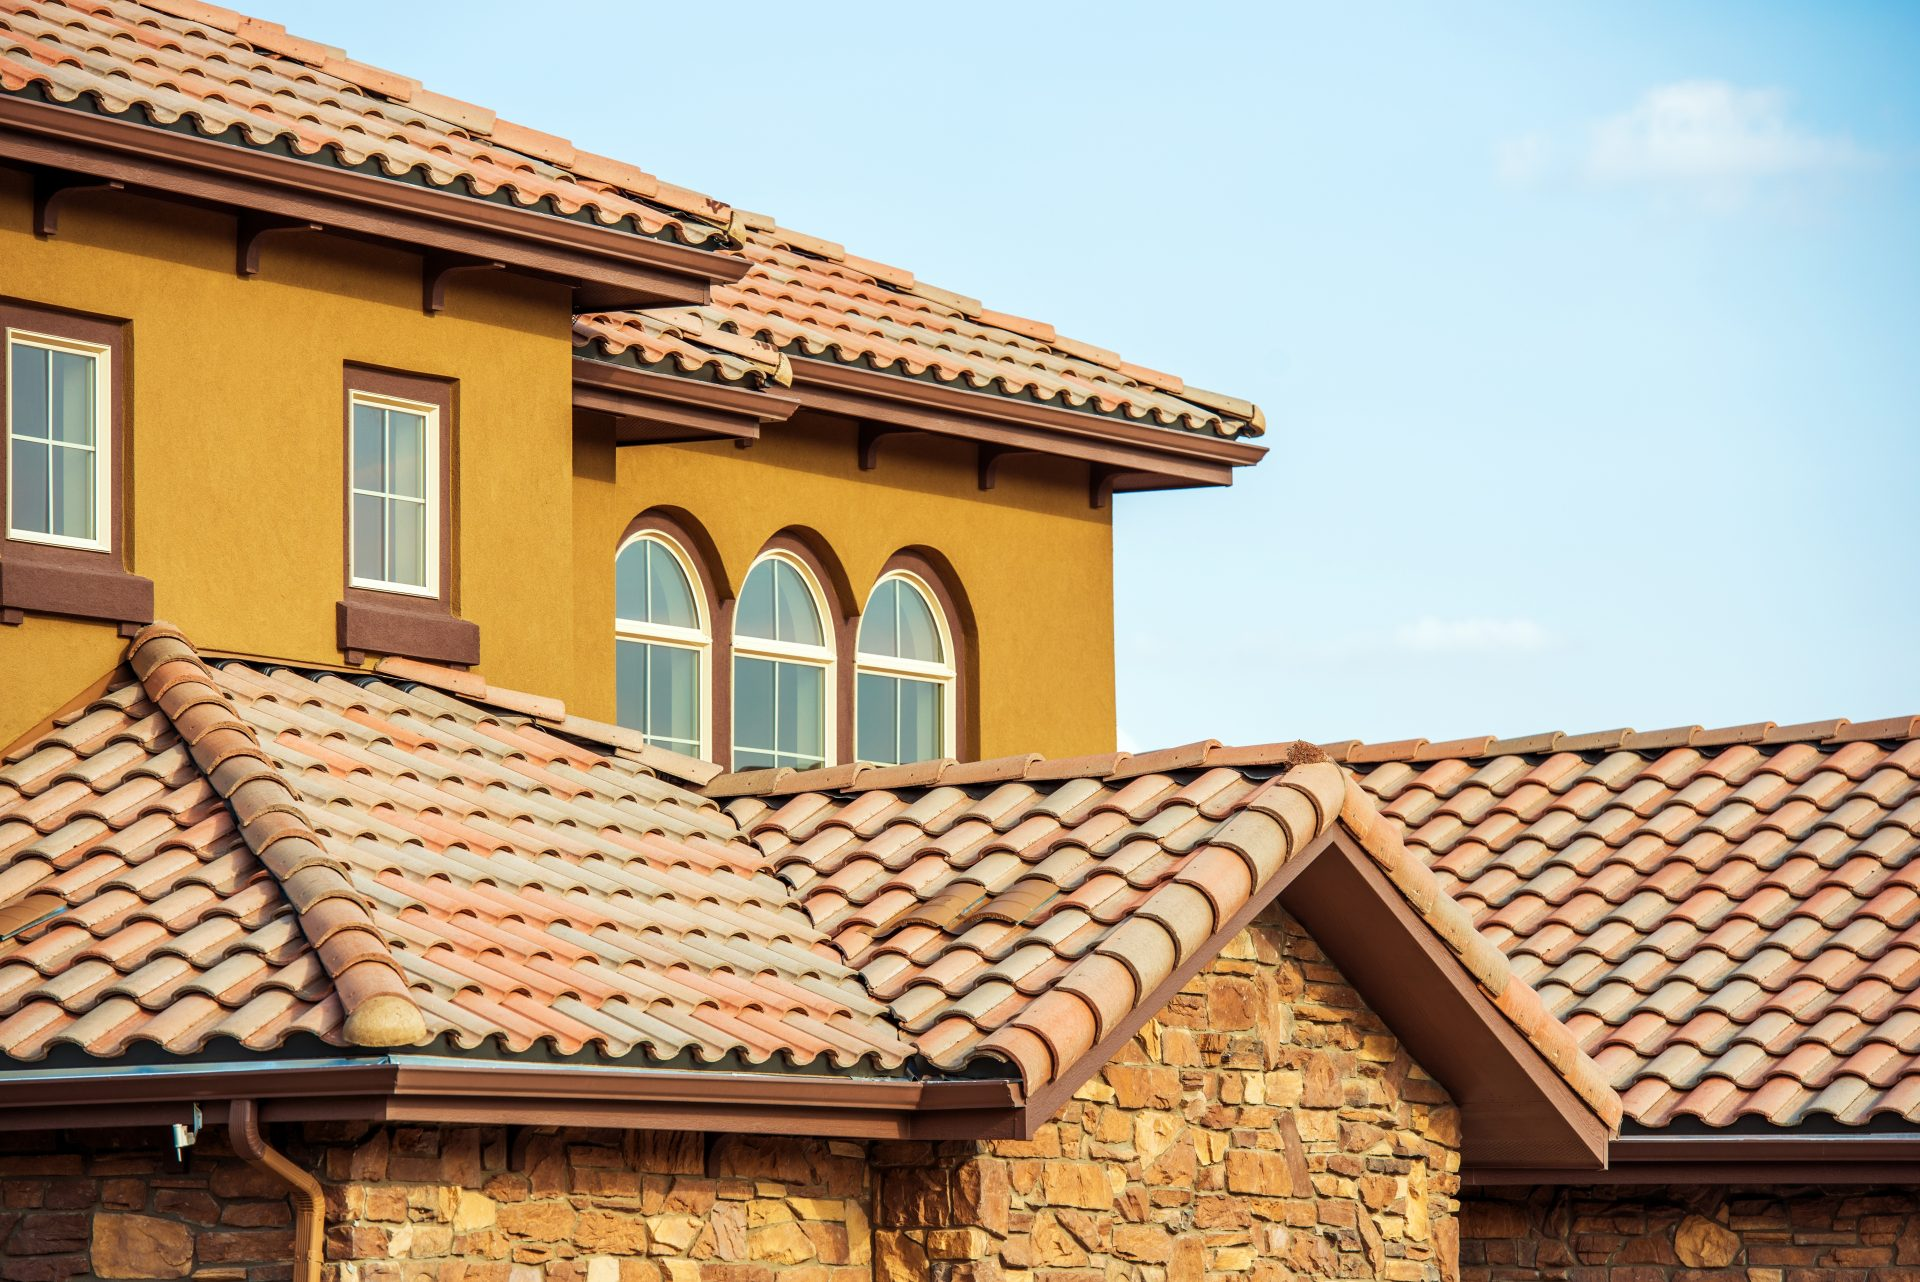 The Most Popular Roofing Materials in DFW